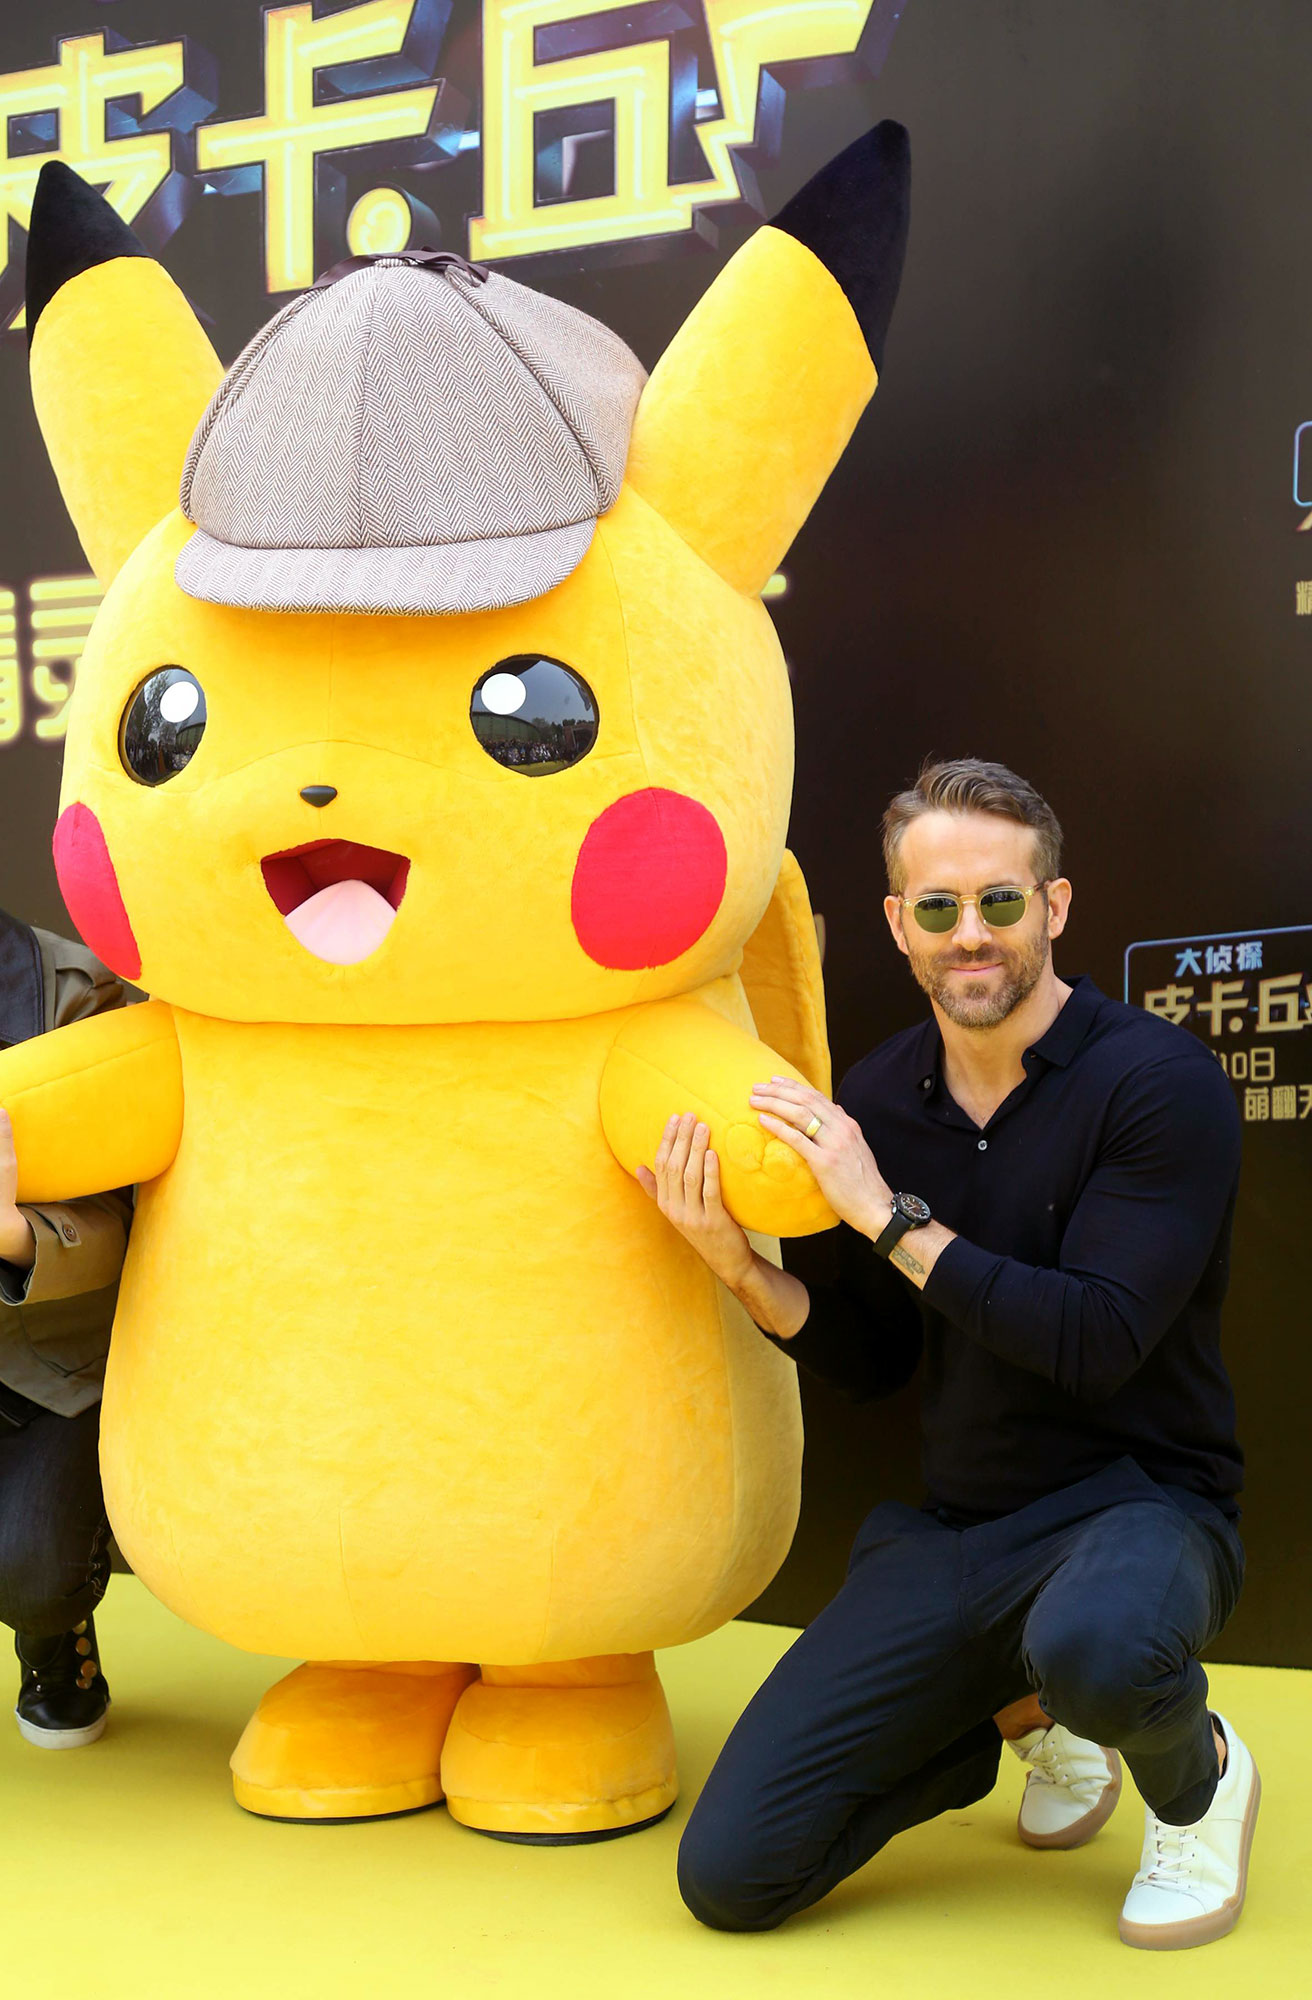 Ryan Reynolds and Pikachu - Ryan Reynolds attends a press conference of film 'Detective Pikachu' on April 21, 2019 in Beijing, China.